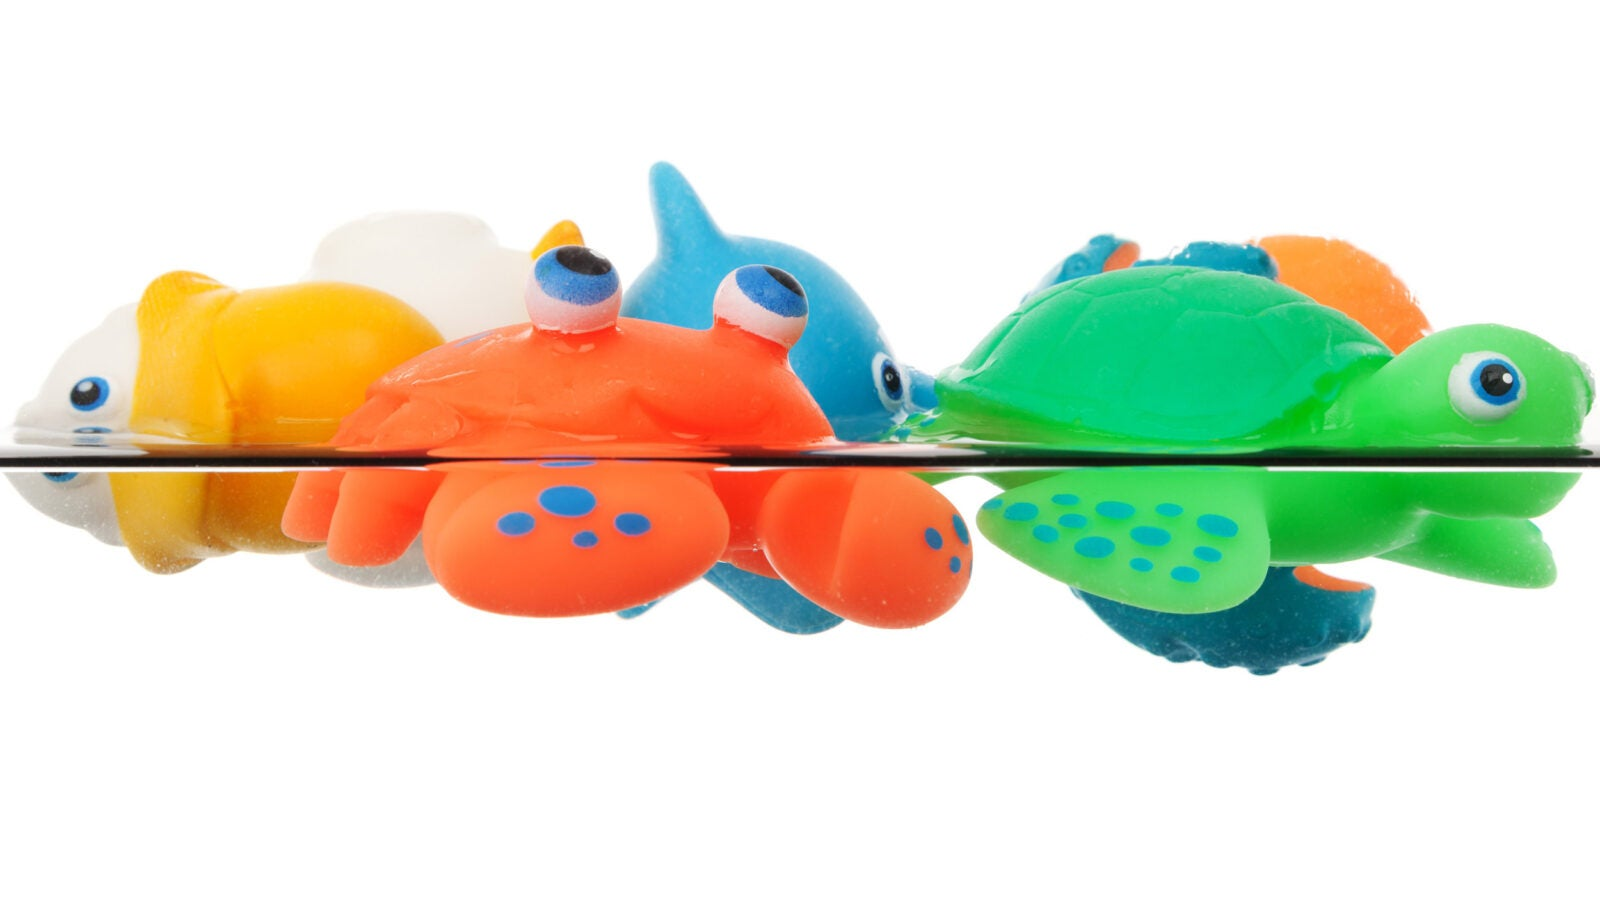 Plastic toys floating on water.